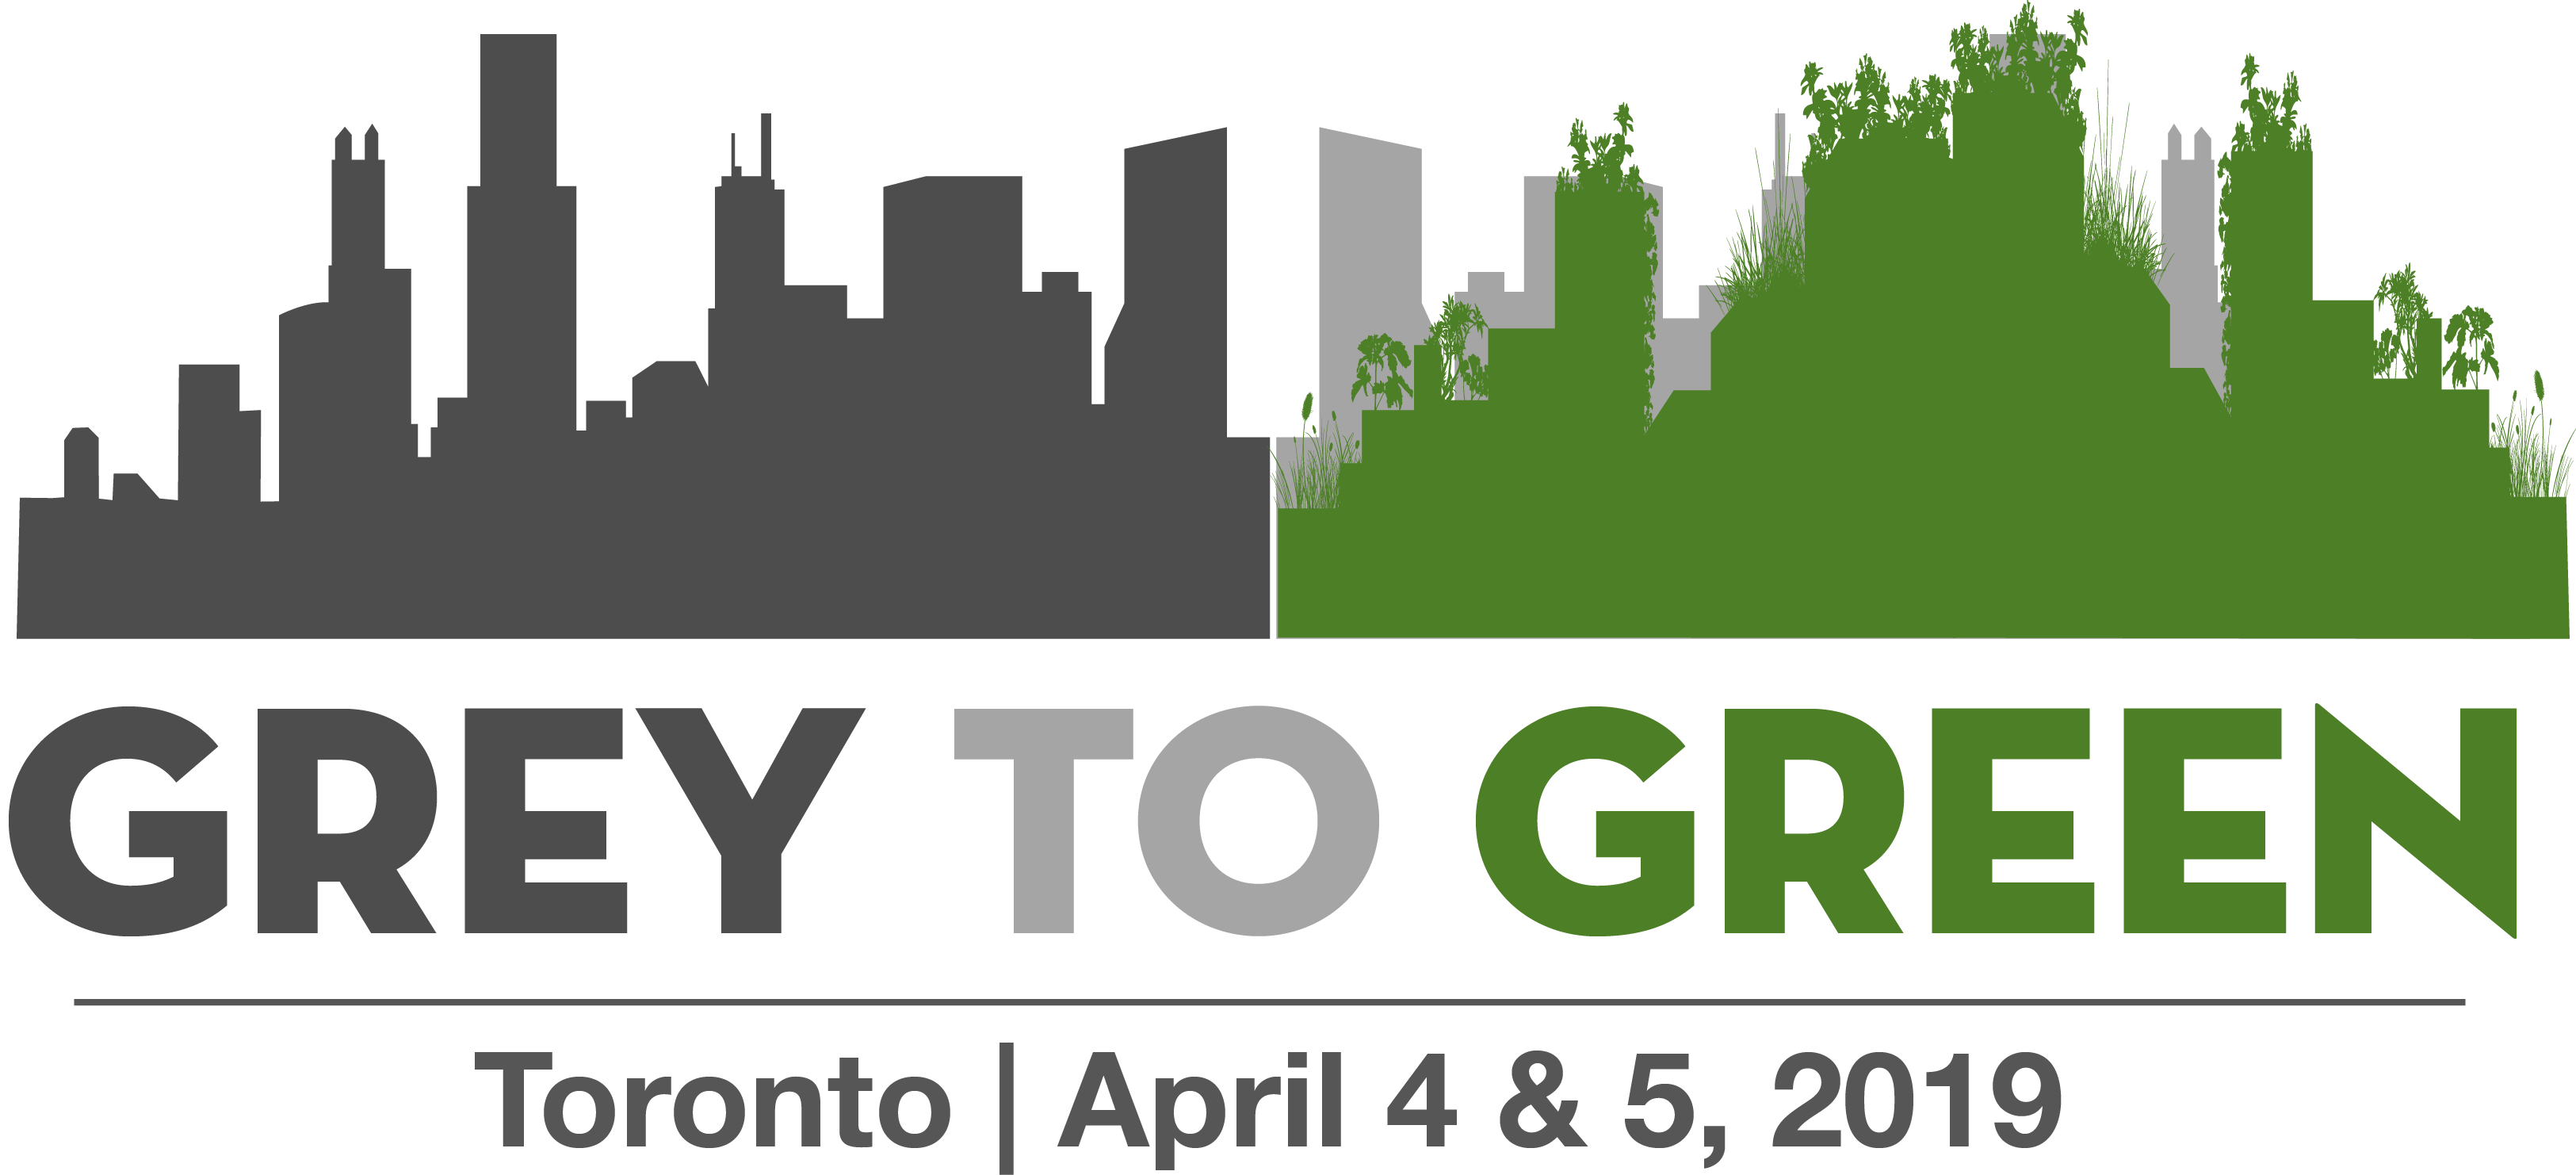 2019 Grey to Green Conference